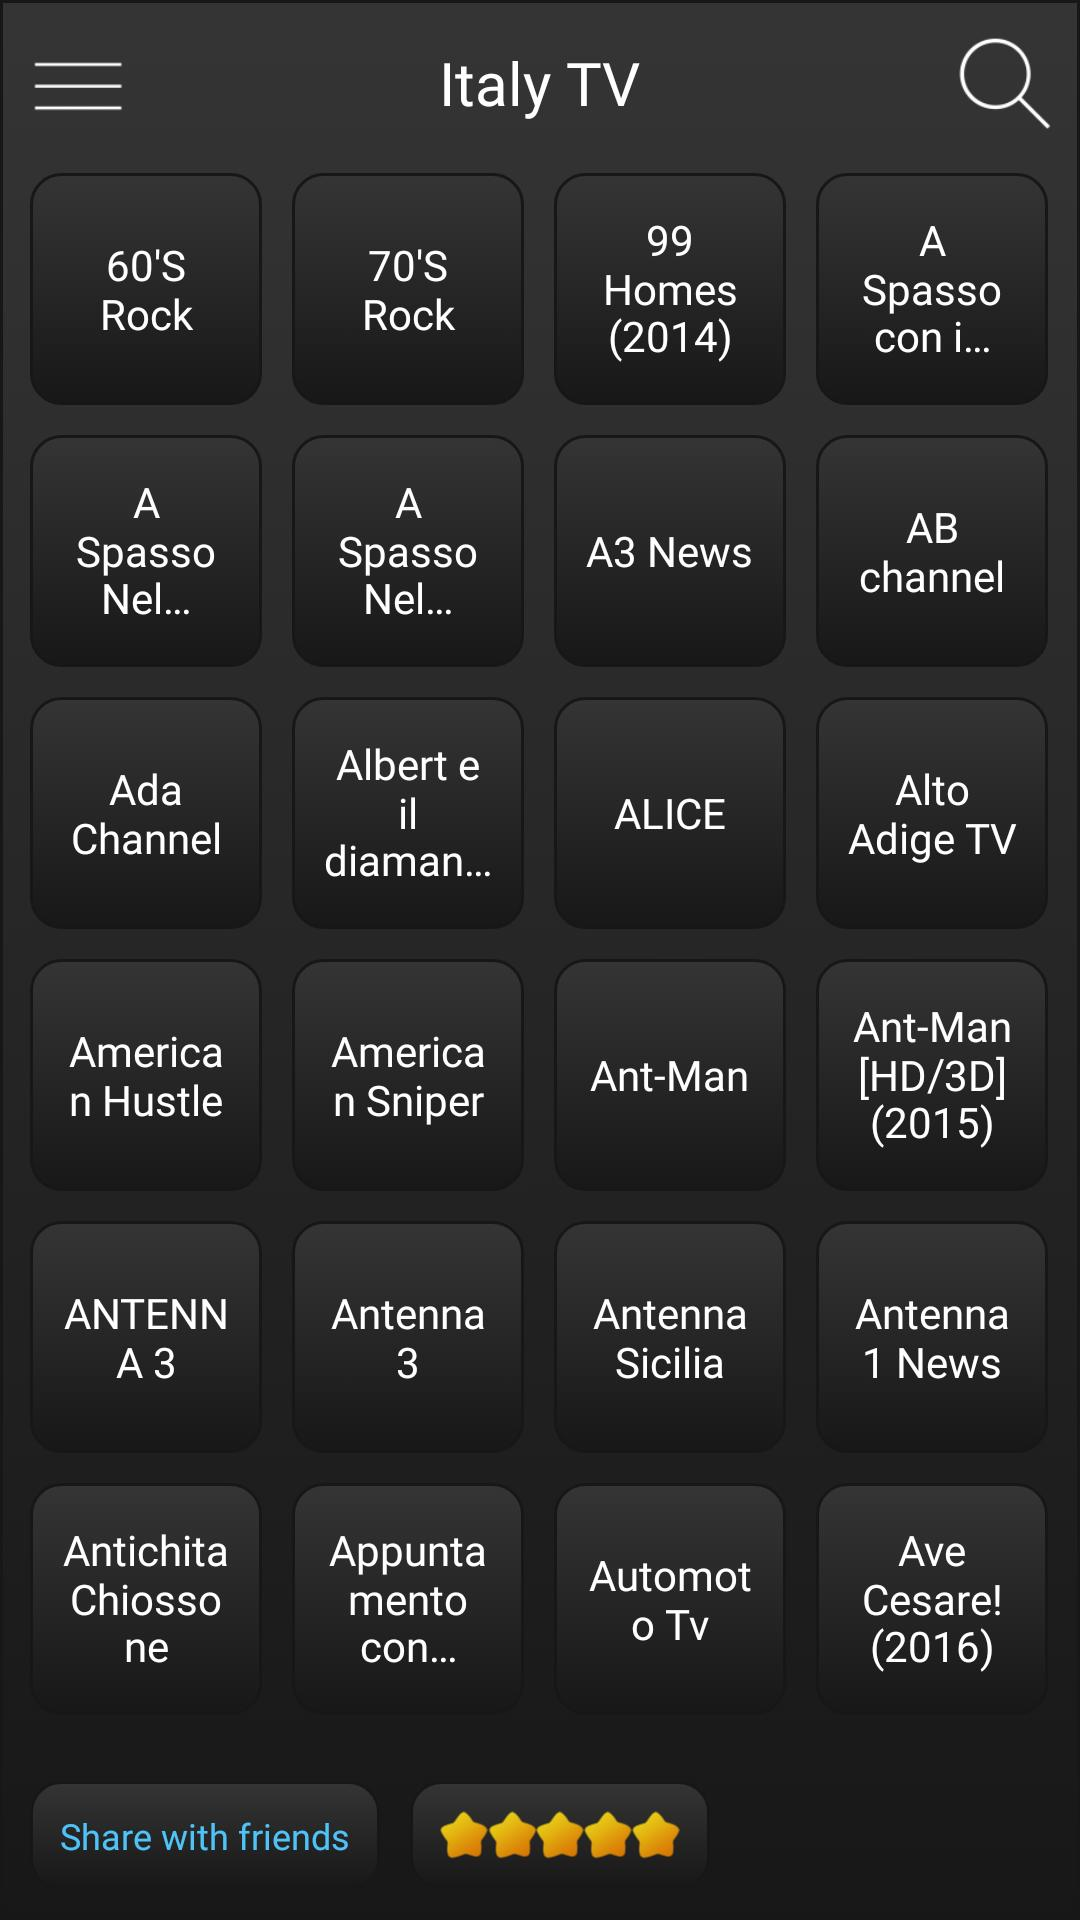 Italy TV Italian Television for Android - APK Download